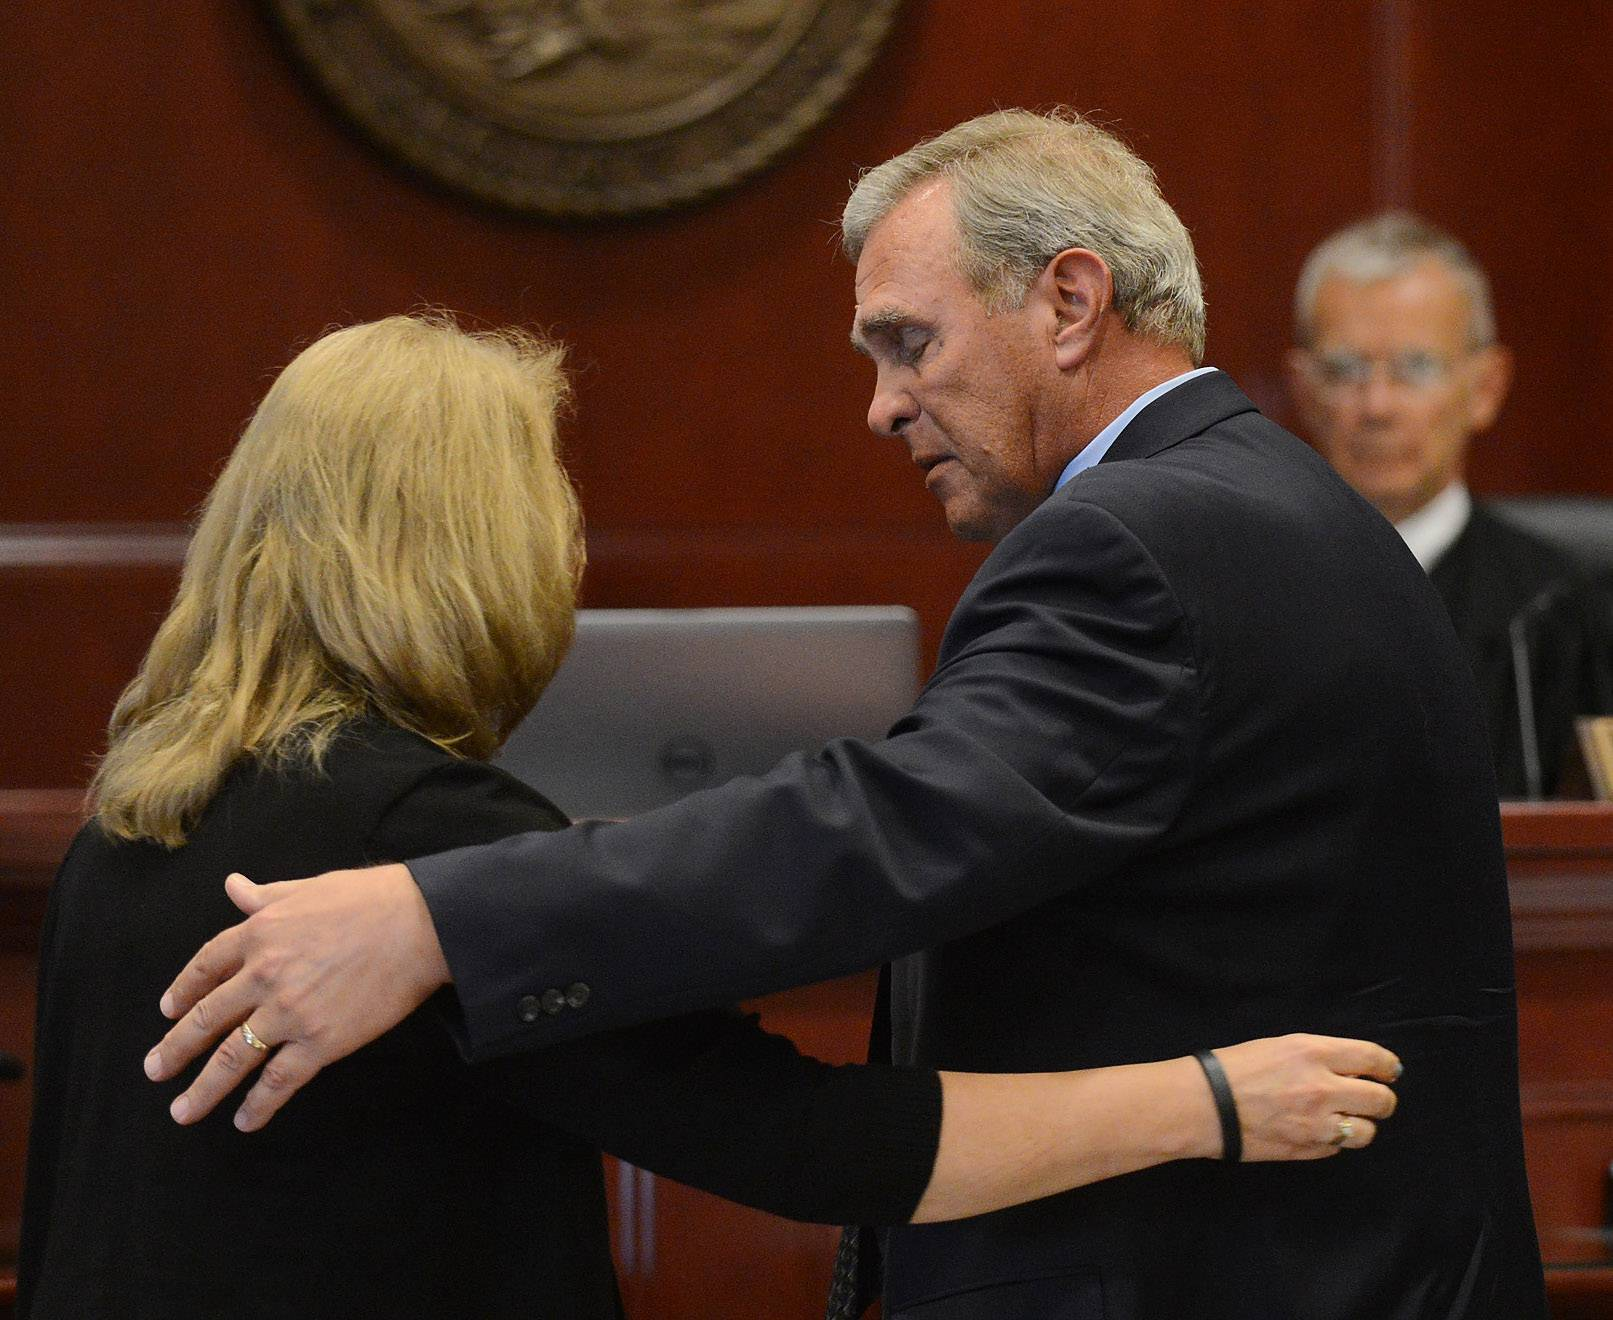 Gary Bogenberger consoles his wife, Ruth, after their victim impact statements after 22 people pleaded guilty to misdemeanor charges stemming from the hazing death of their son, Northern Illinois University freshman David Bogenberger of Palatine, Friday at the DeKalb County Courthouse in Sycamore.